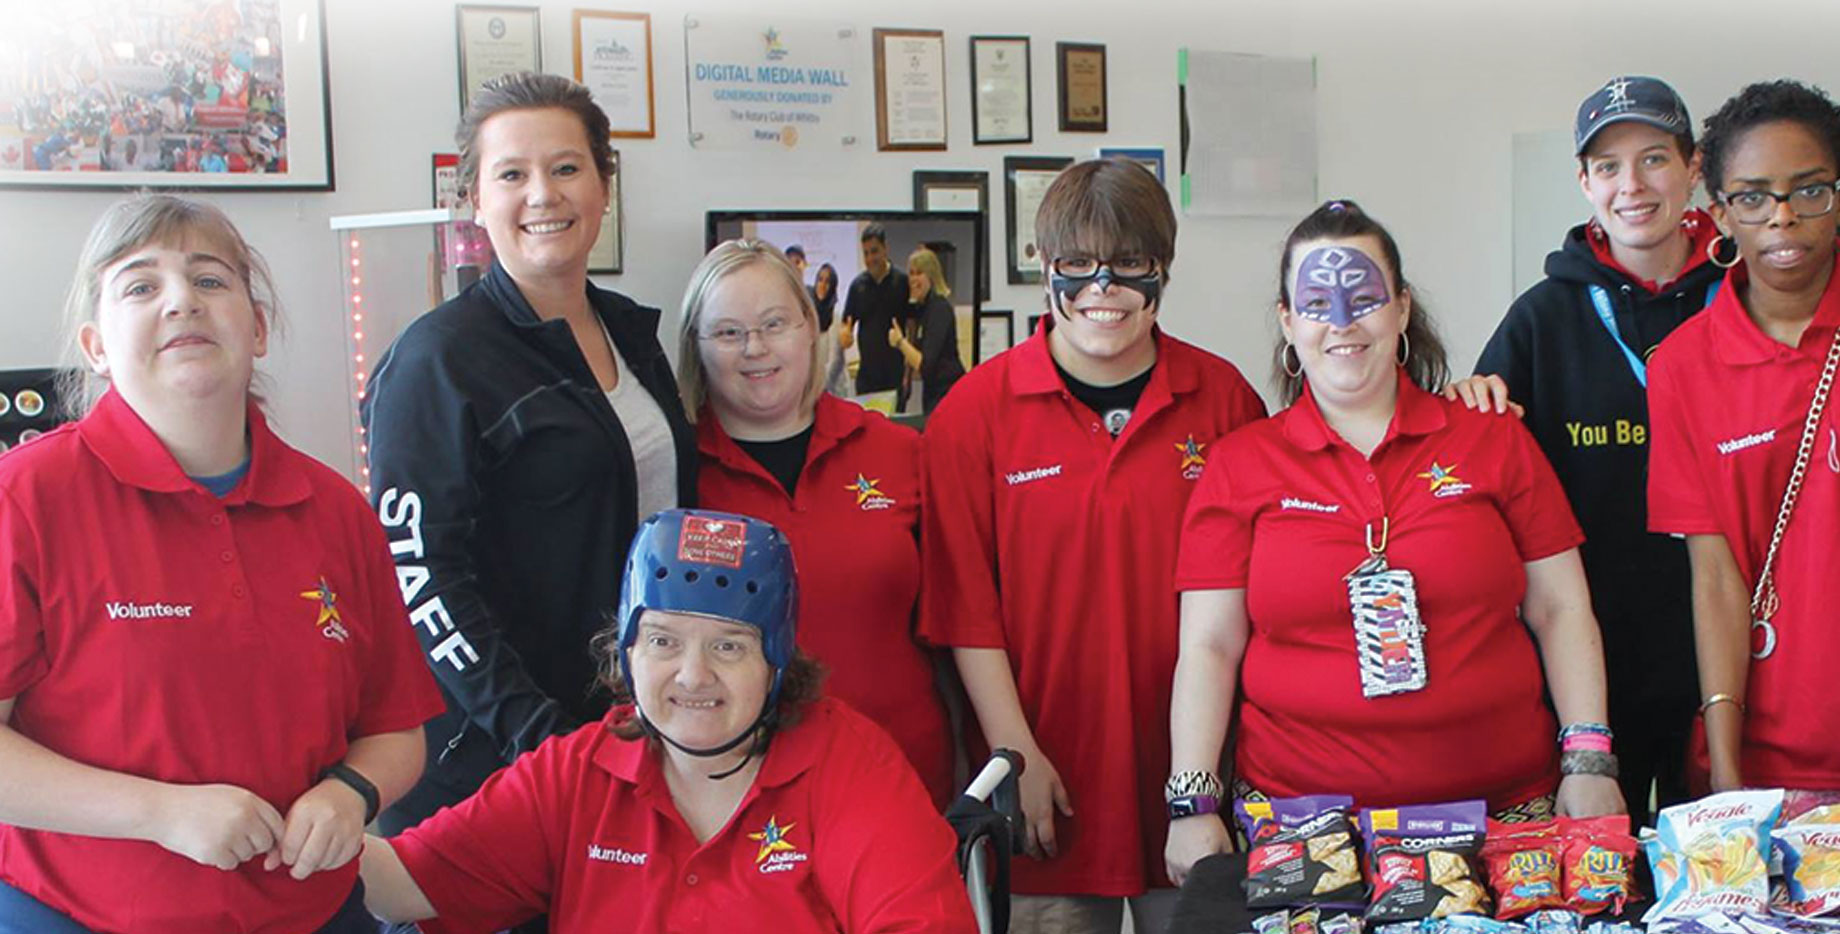 Abilities Centre volunteers and Coordinator supporting the development and fundraising initiatives and strategies of Abilities Centre